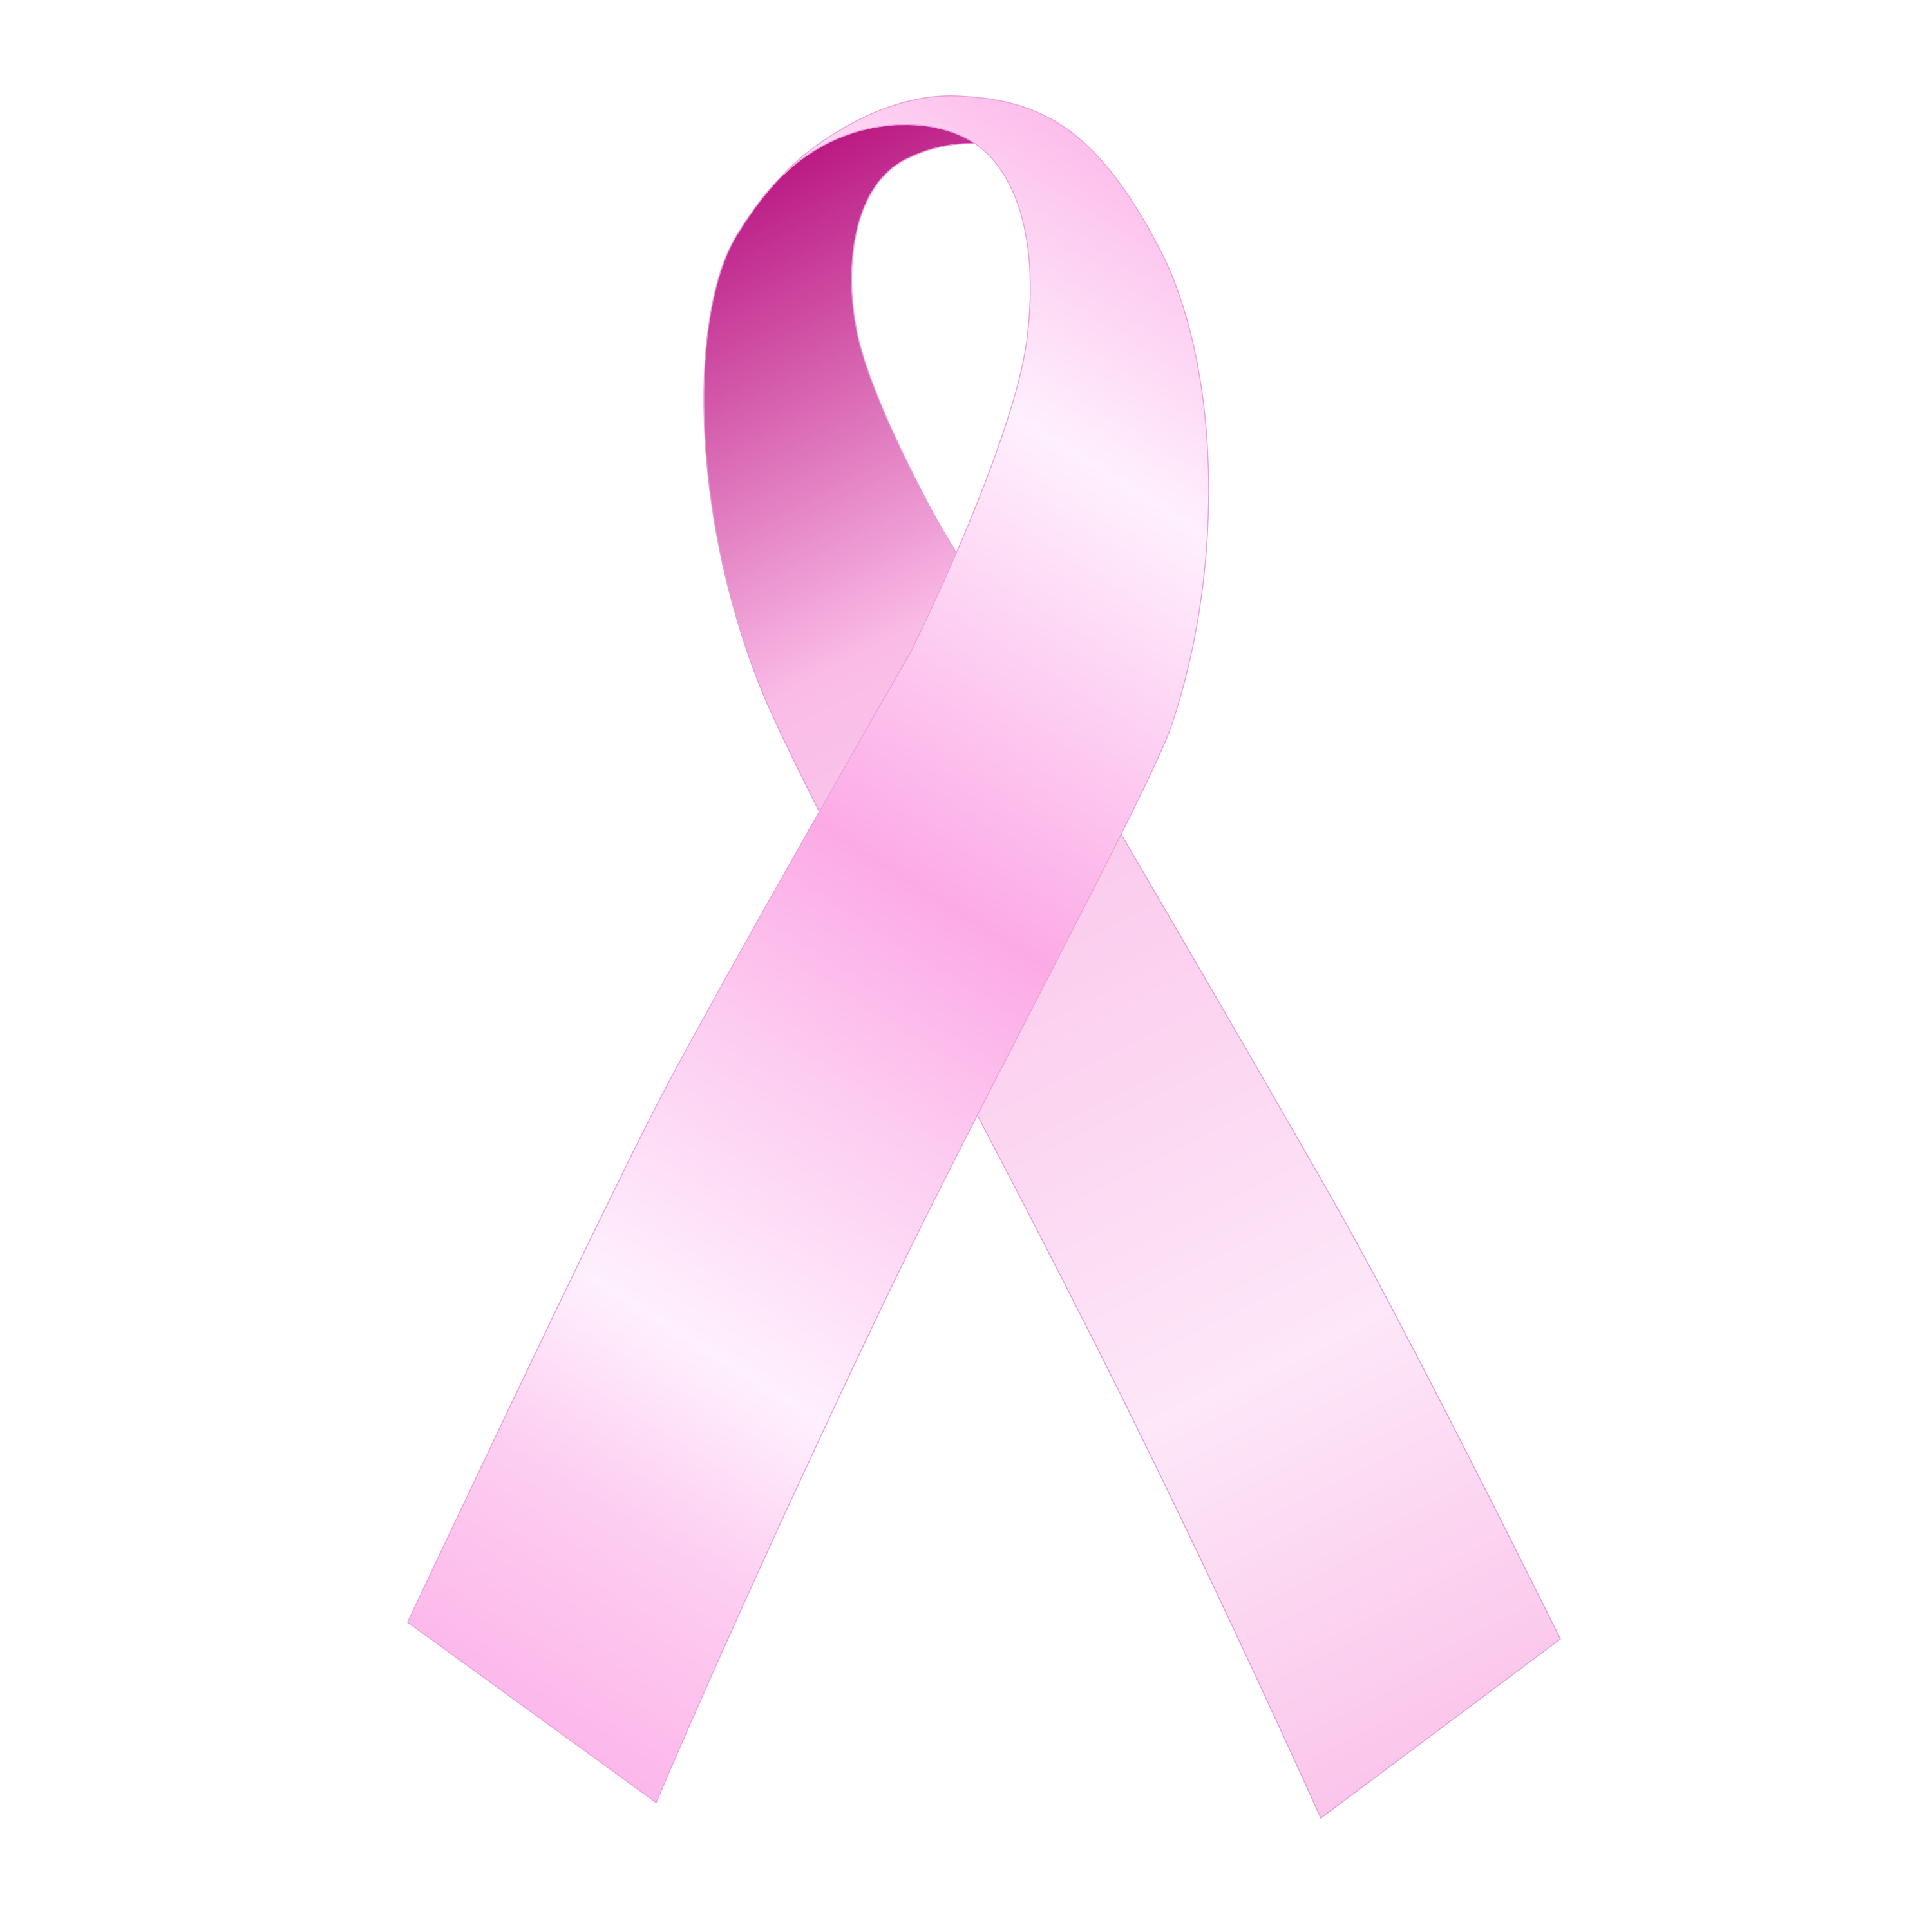 Transparent png has black background. Breast cancer awareness ribbons